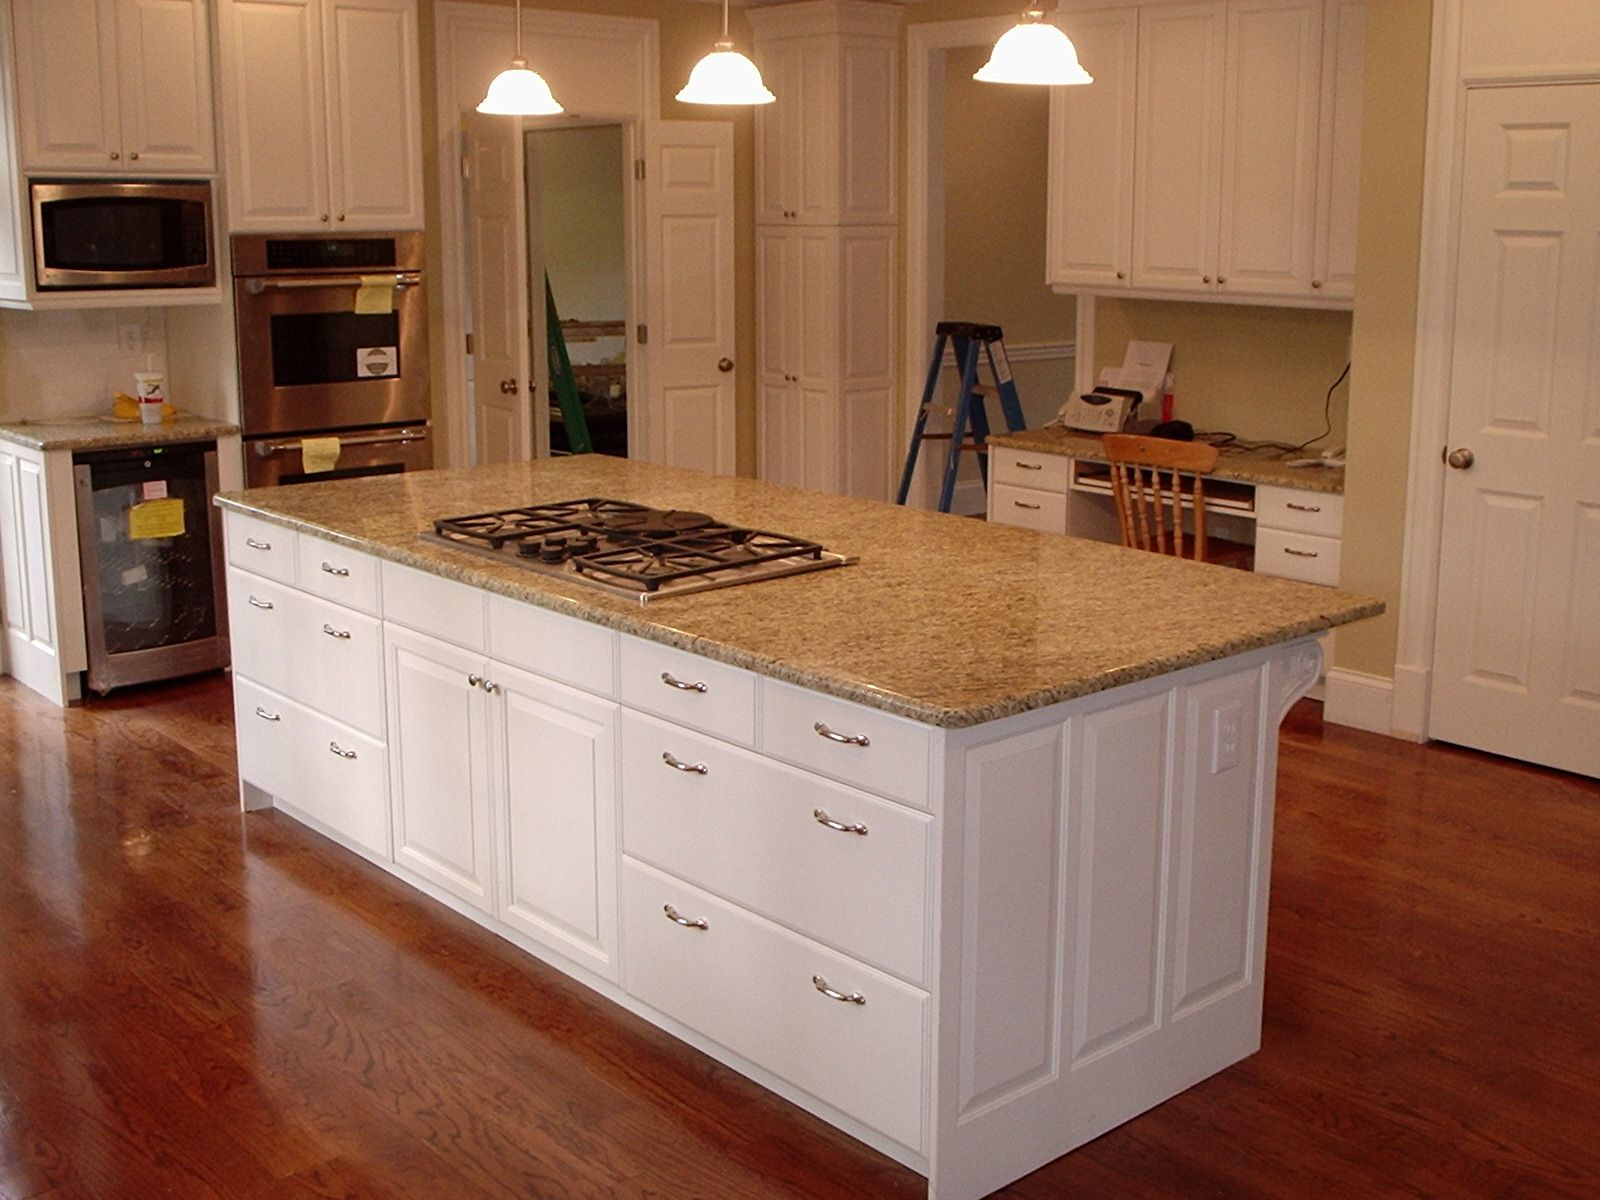 Build Your Own Kitchen Cabinet Kitchen Cabinets Proulx And How You Can Learn How To Build